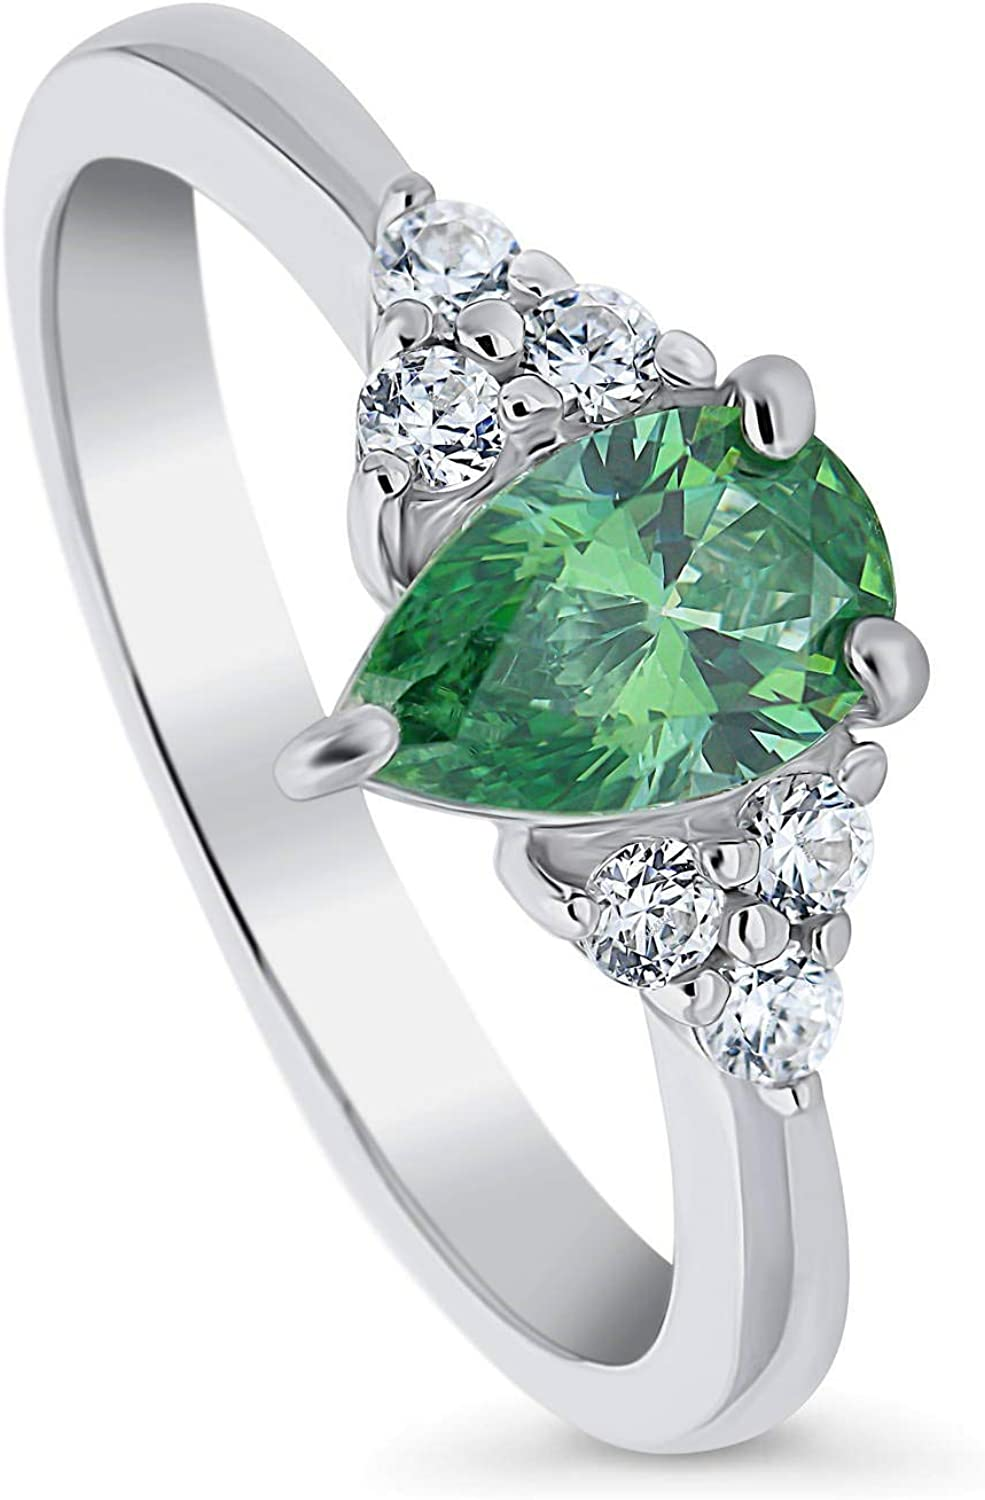 BERRICLE Rhodium Plated Sterling Silver Solitaire Promise Ring Made with Swarovski Zirconia Green Pear Cut